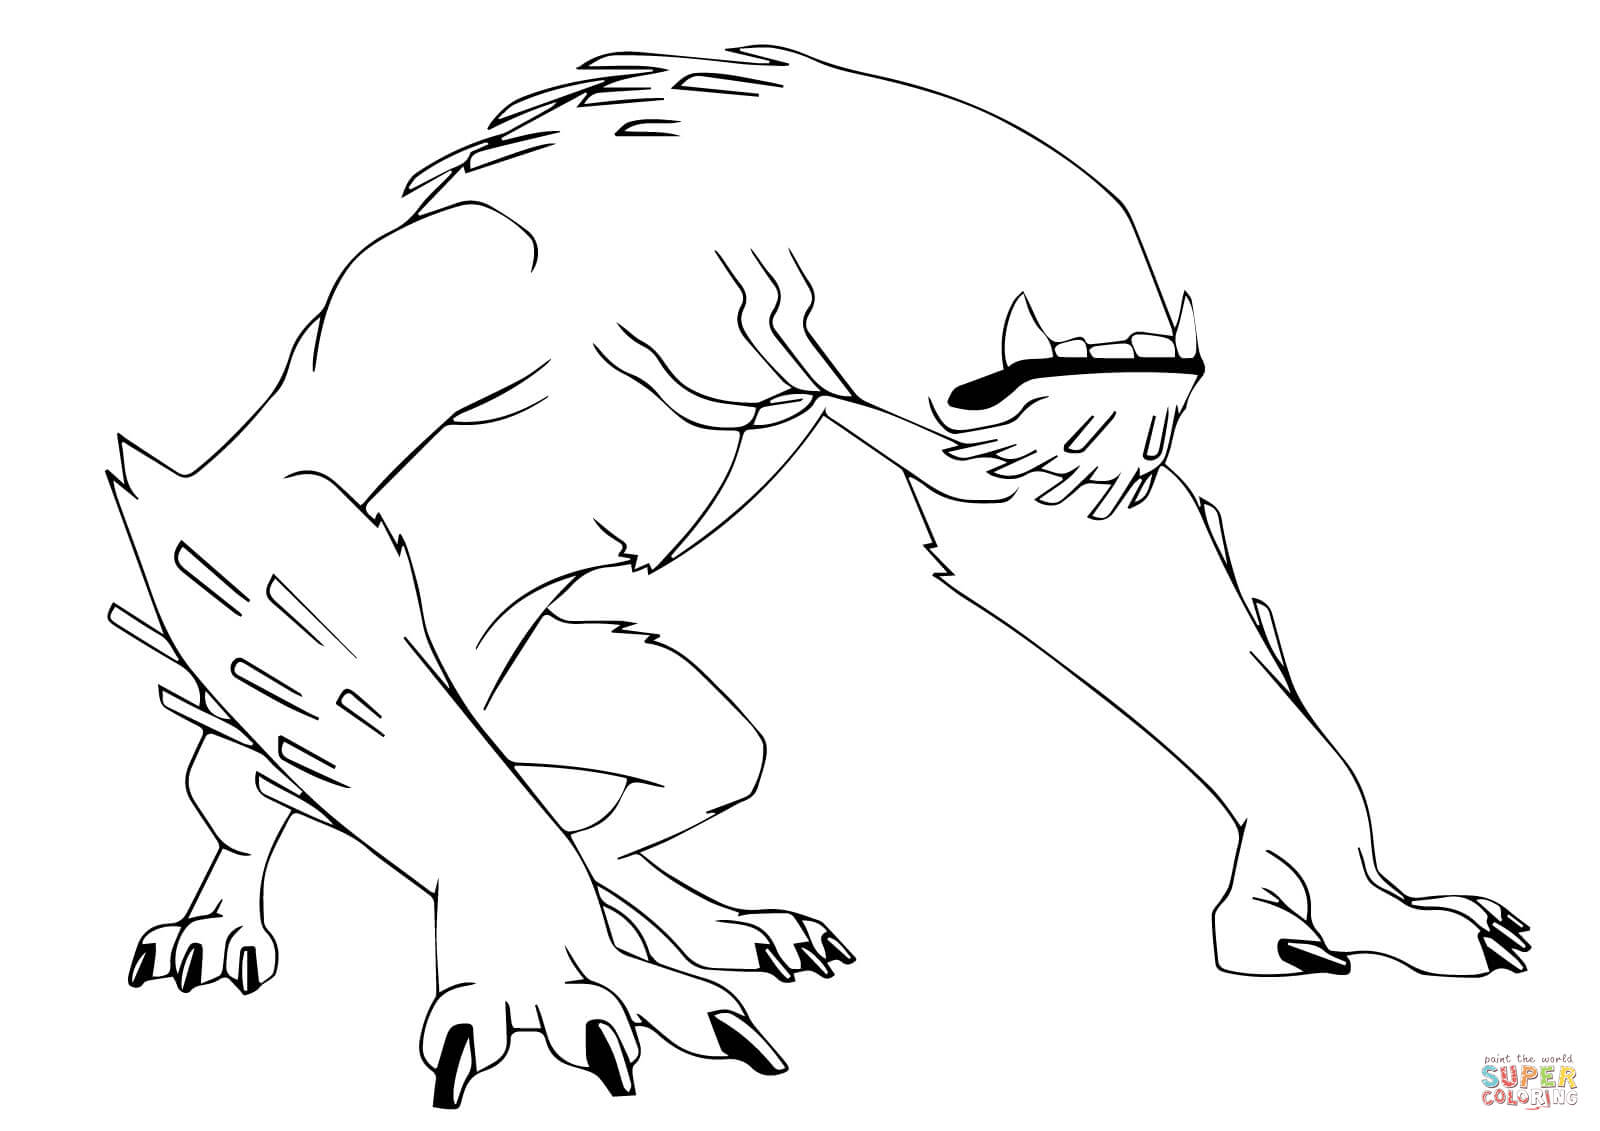 Ben 10 Wildmutt Coloring Page